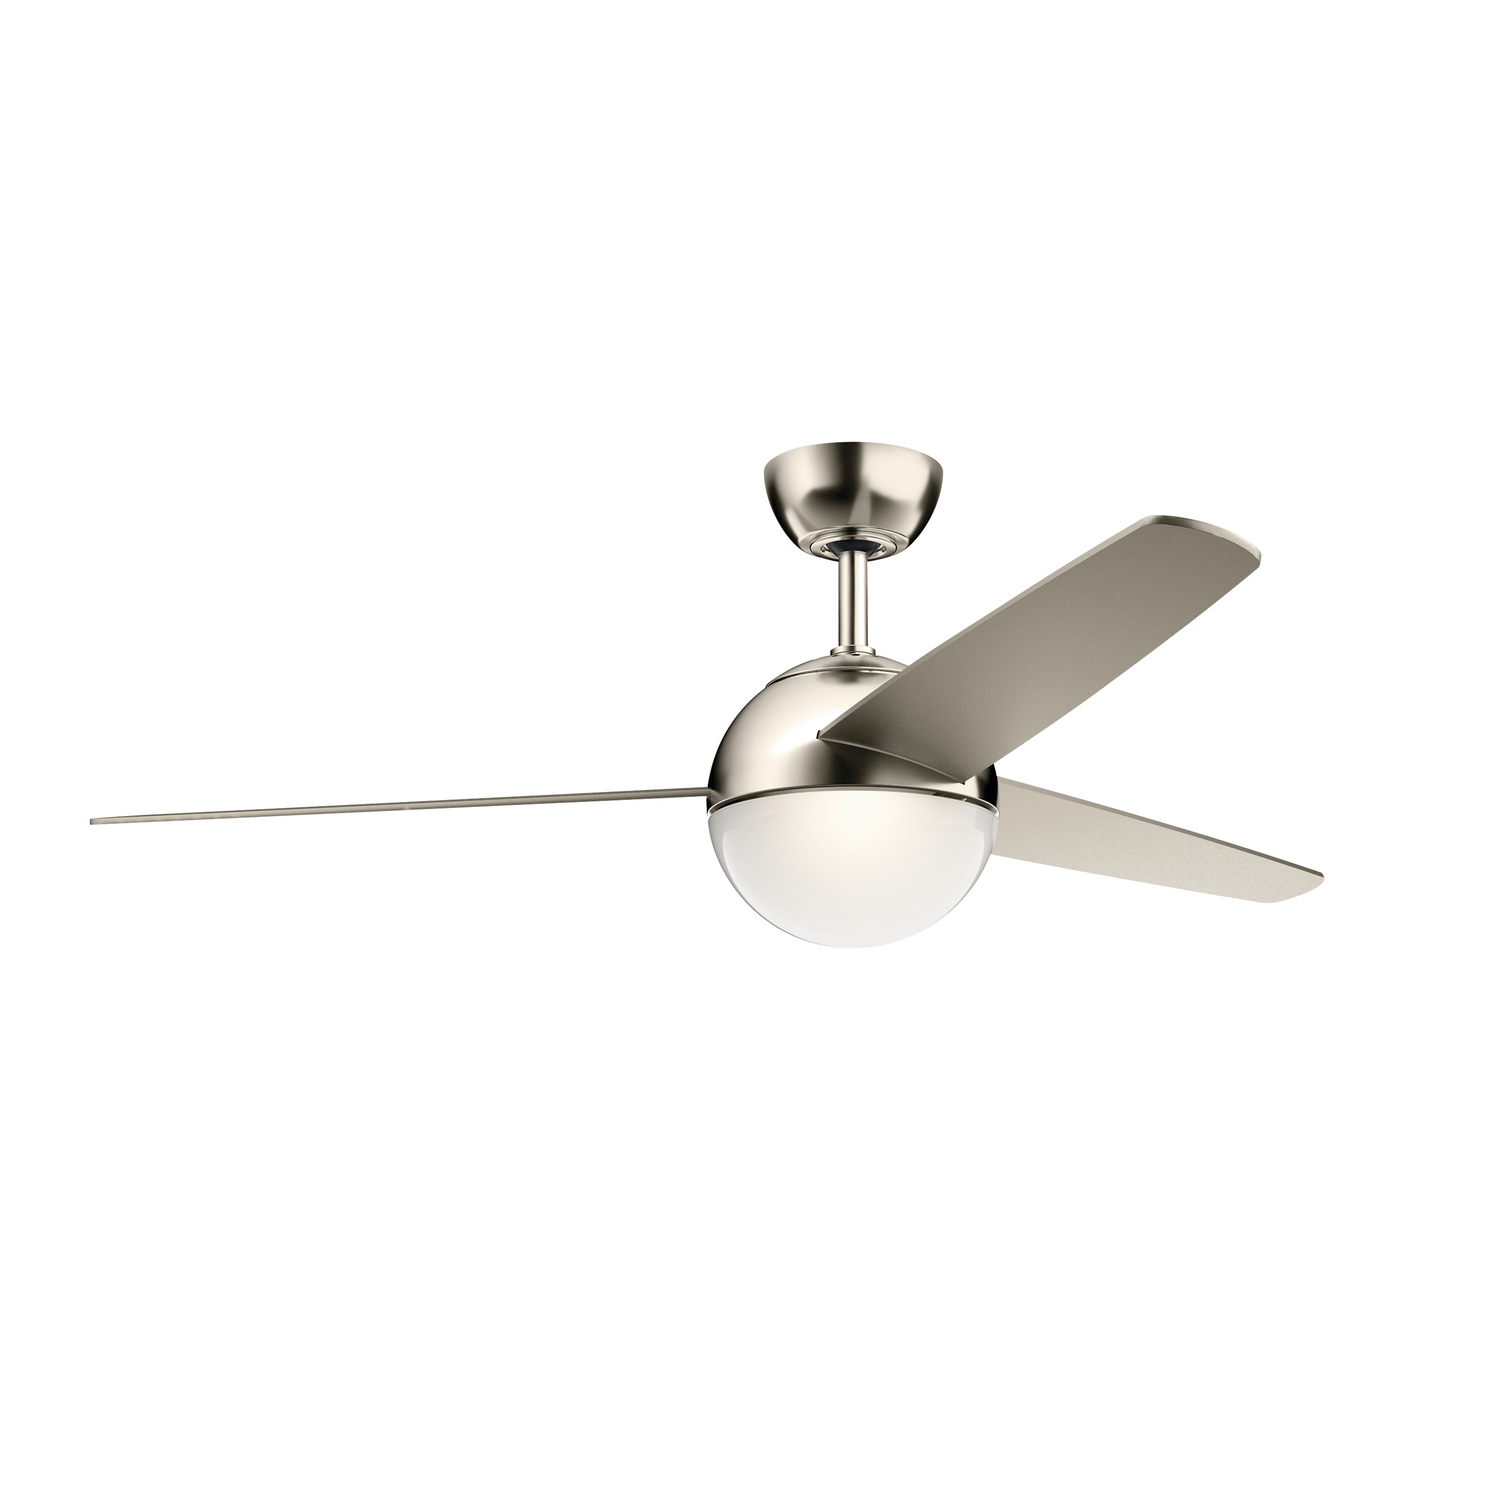 56 inchCeiling Fan from the Bisc collection by Kichler 300710PN